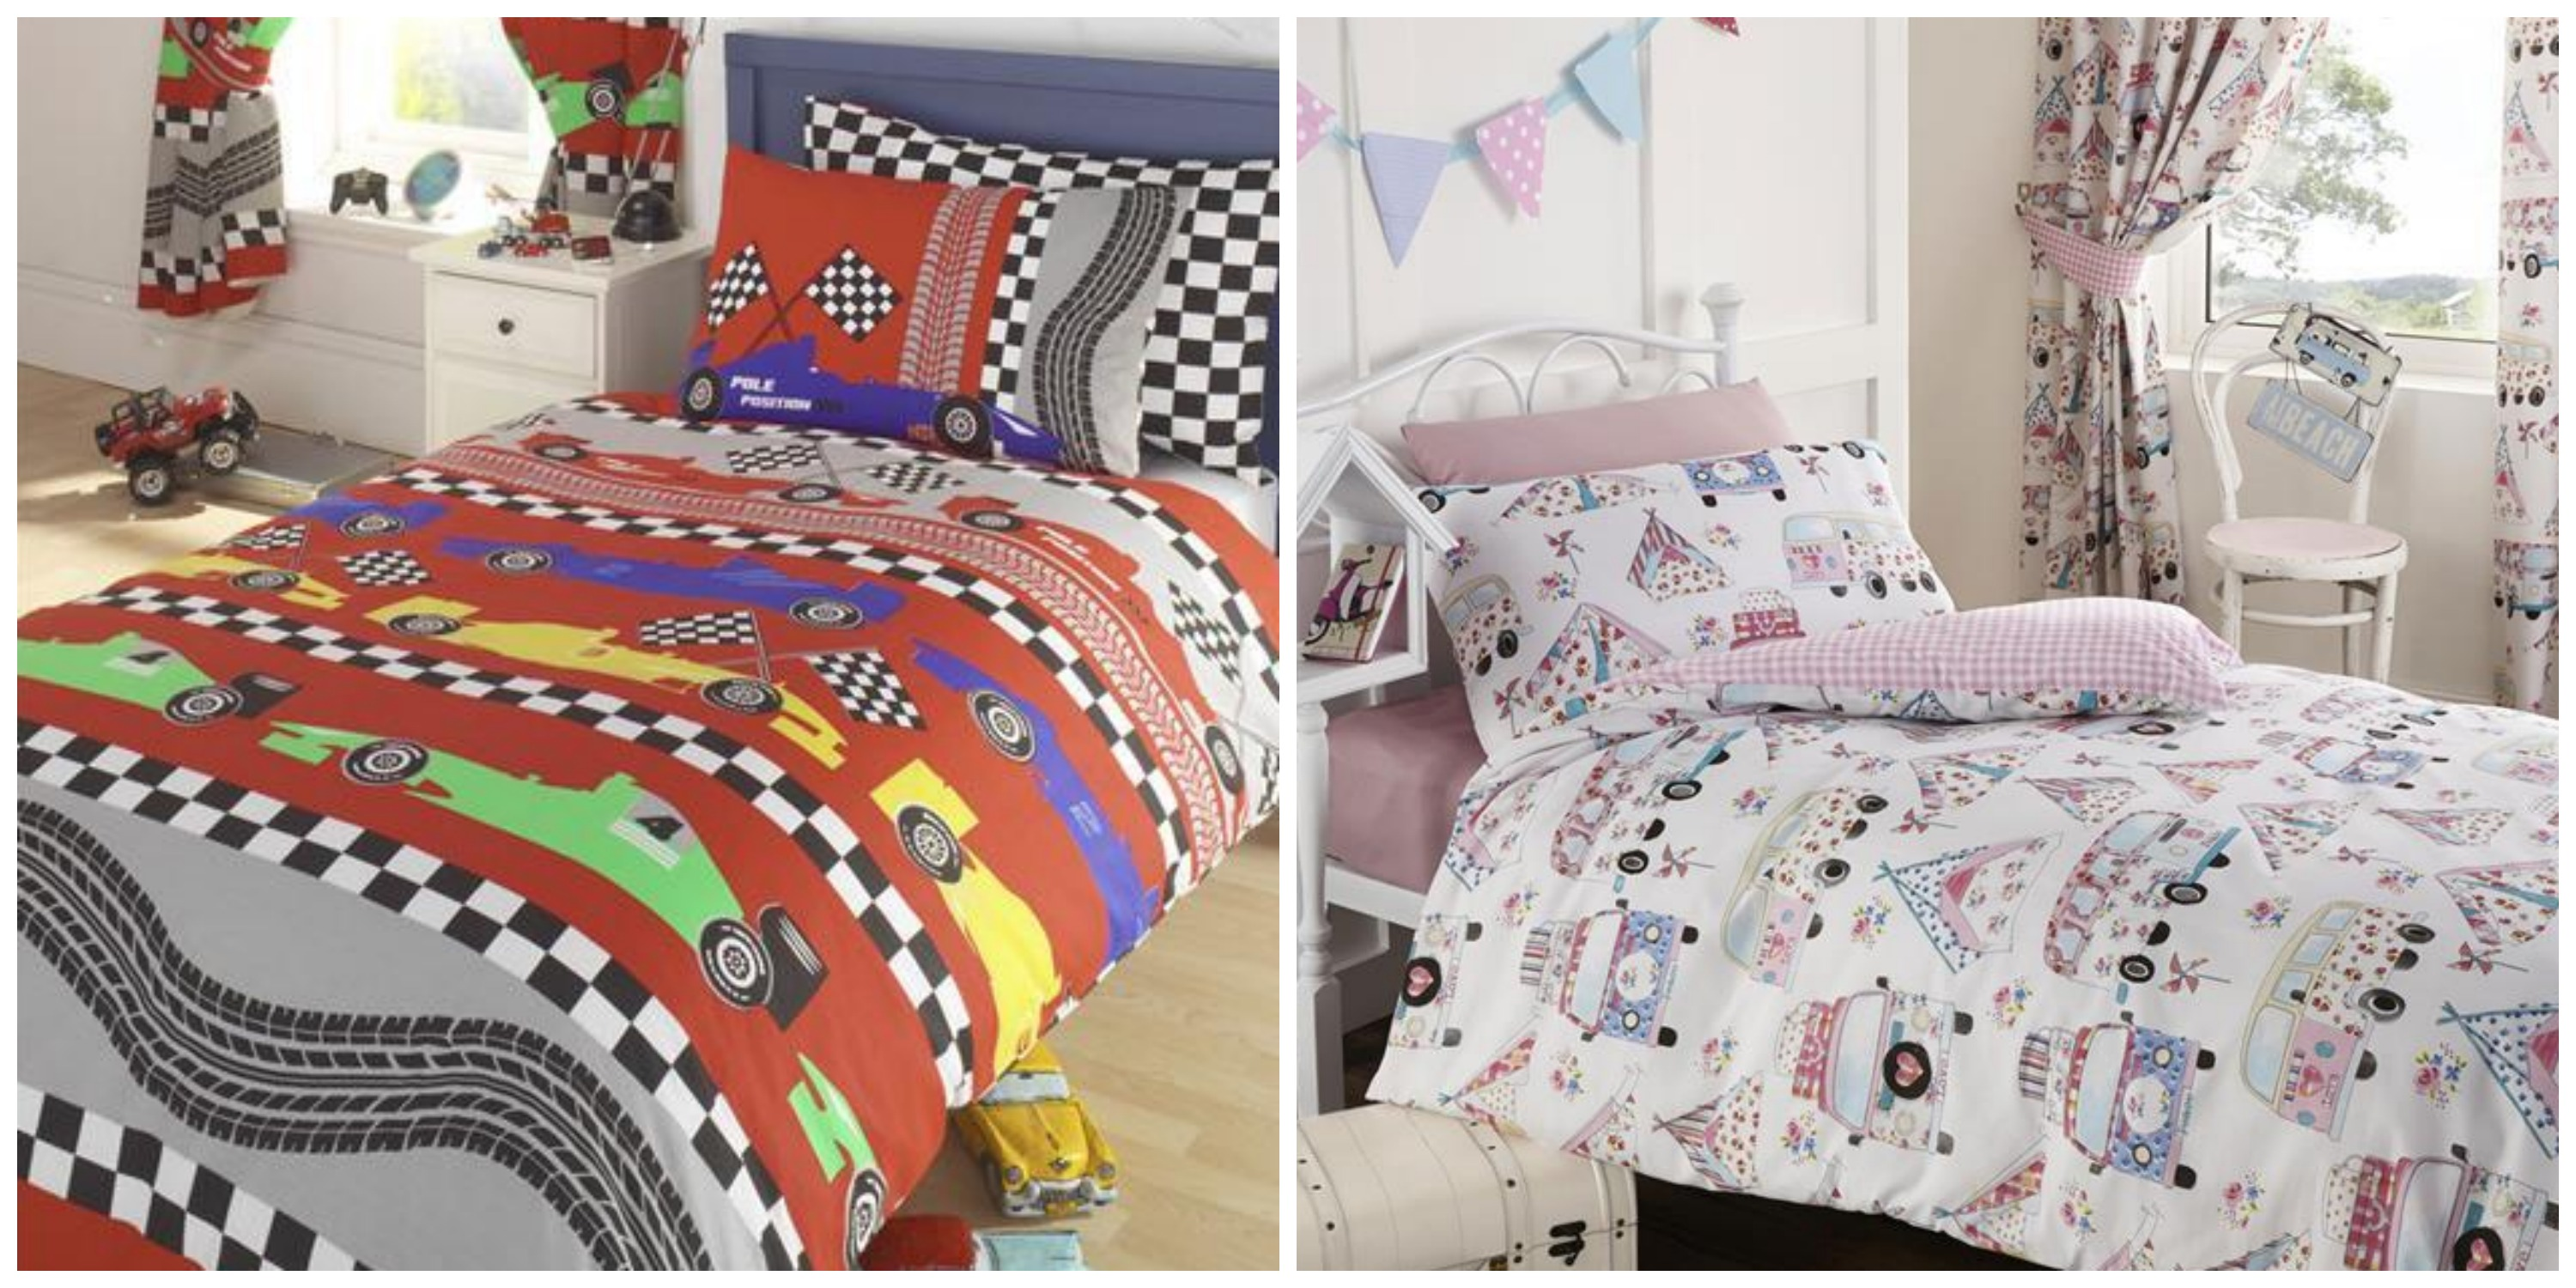 Giveaway: Win a kids bedding set - Family Fever